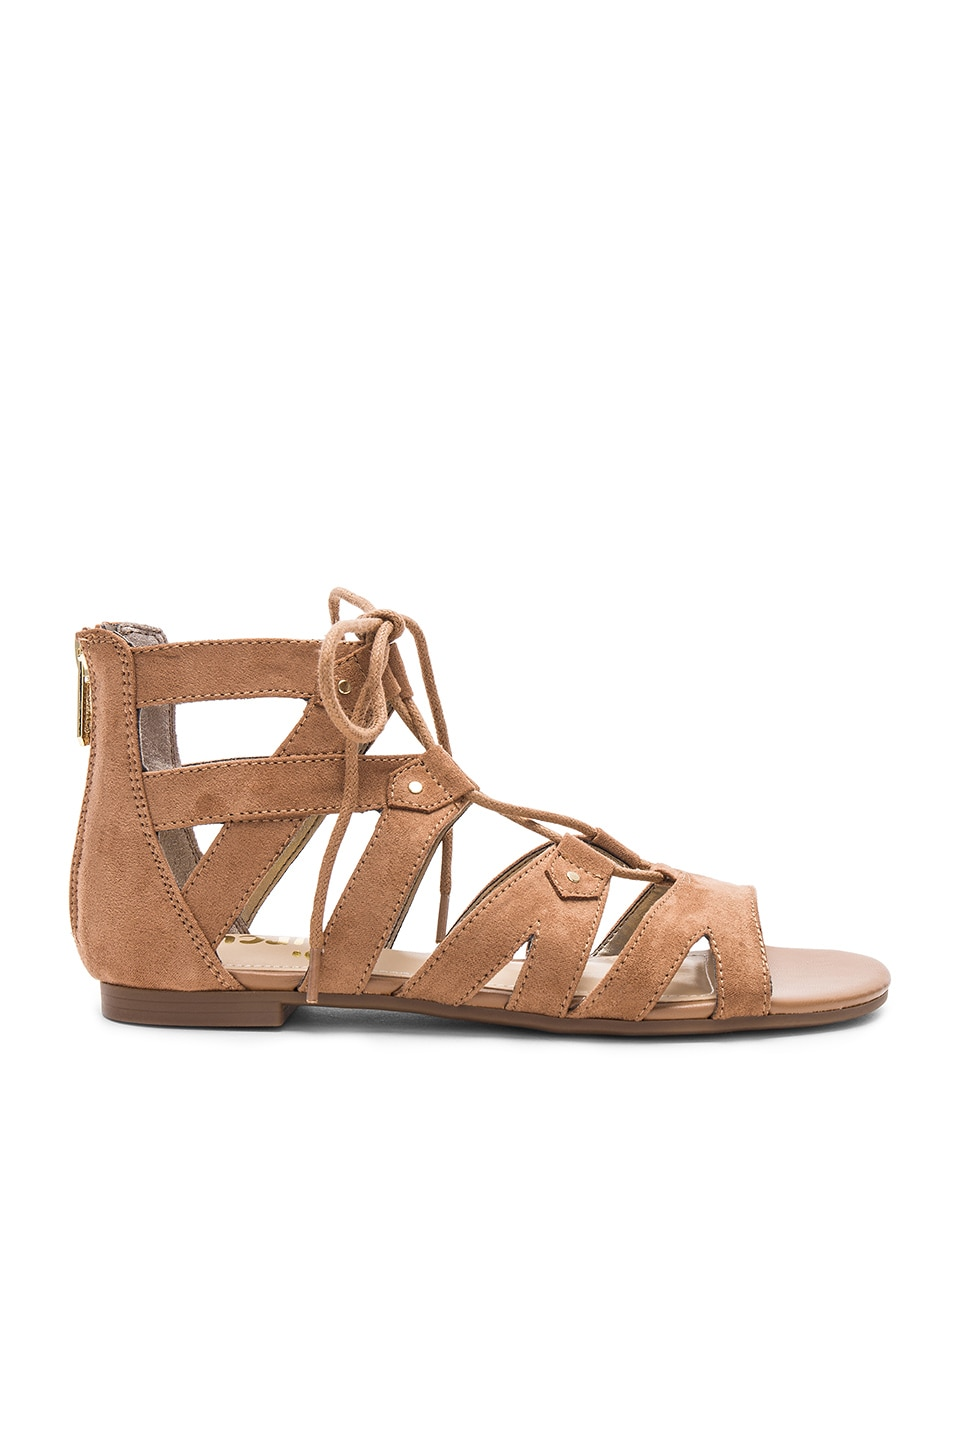 Circus by Sam Edelman Hagan Sandal in Golden Caramel